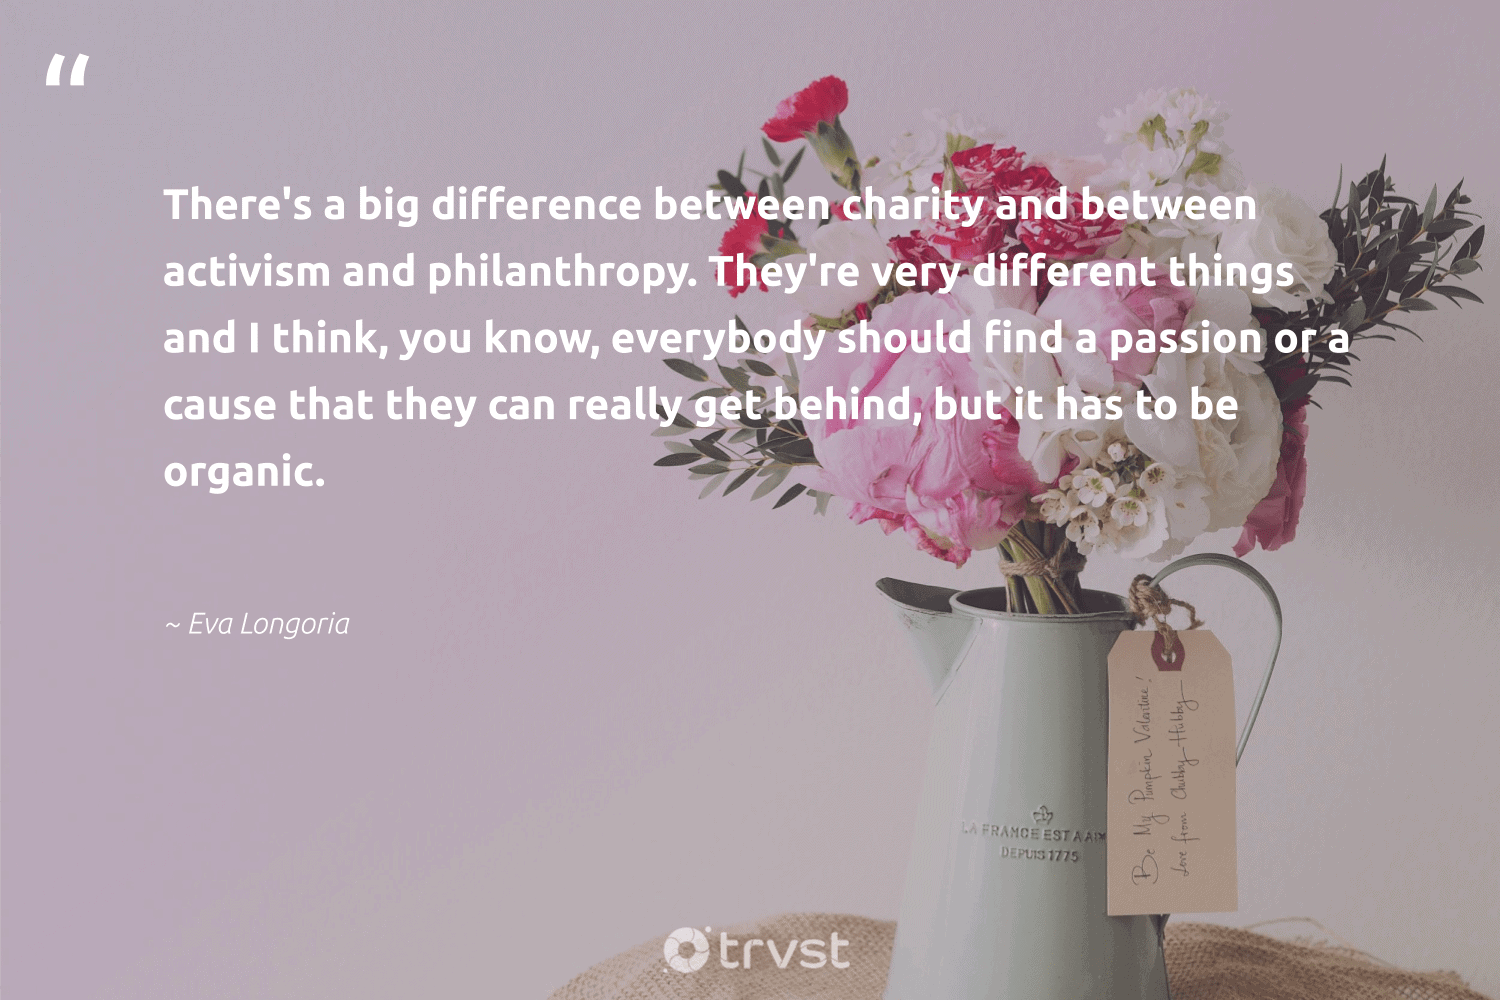 """""""There's a big difference between charity and between activism and philanthropy. They're very different things and I think, you know, everybody should find a passion or a cause that they can really get behind, but it has to be organic.""""  - Eva Longoria #trvst #quotes #Charity #cause #passion #philanthropy #organic #activism #weareallone #betterplanet #thinkgreen #fundraising"""